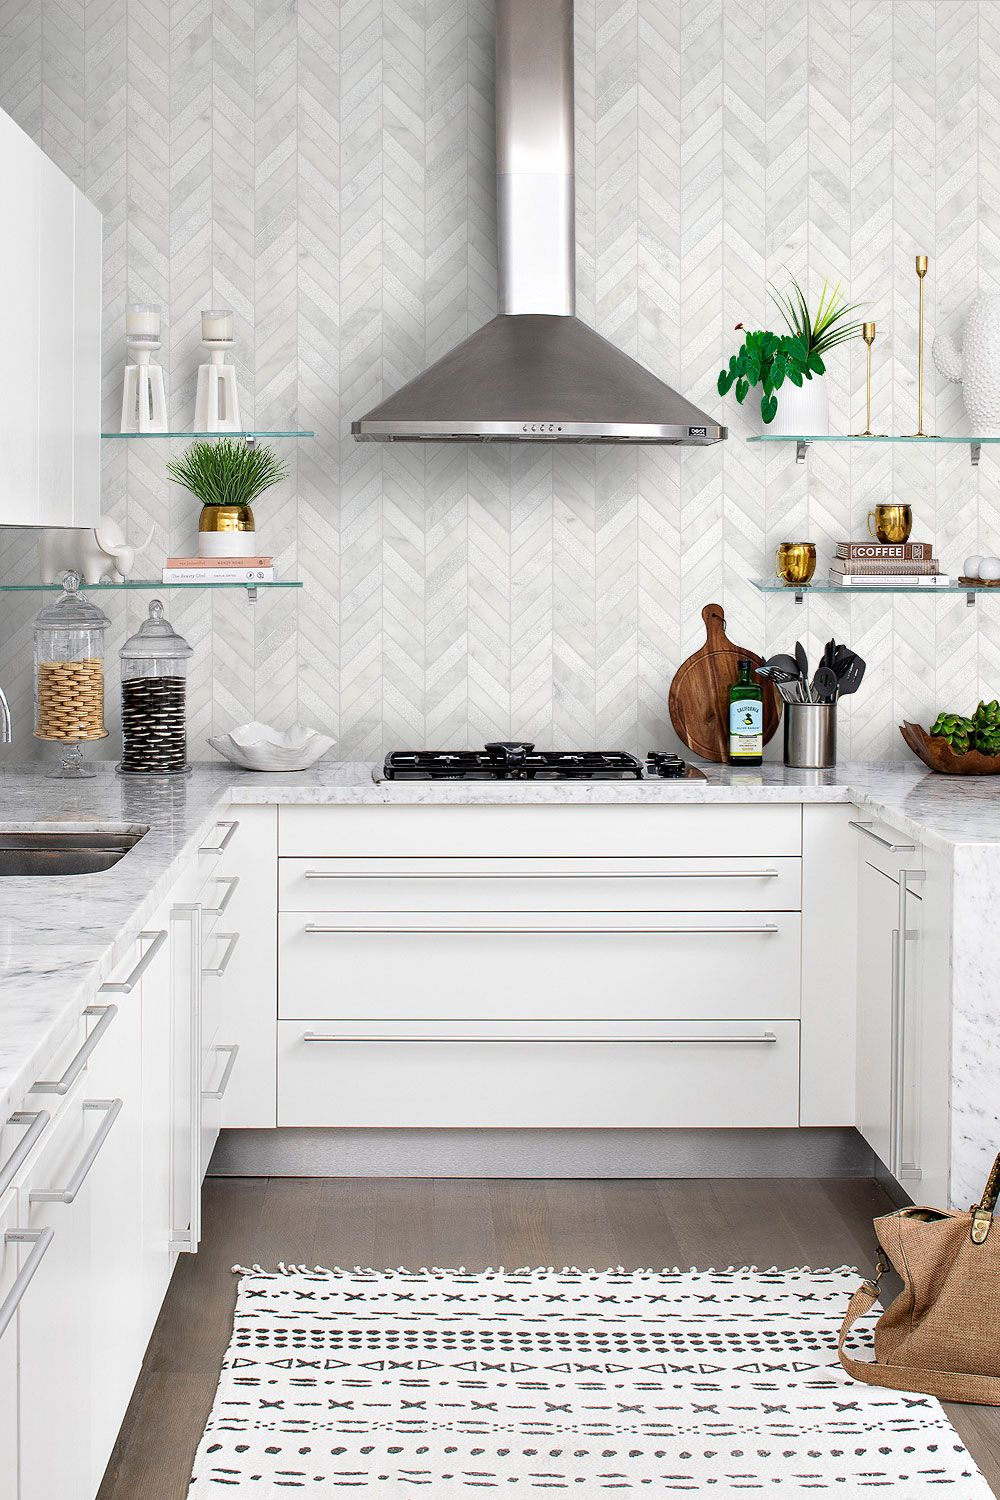 Ba631613 Marble In 2020 White Tile Kitchen Backsplash White